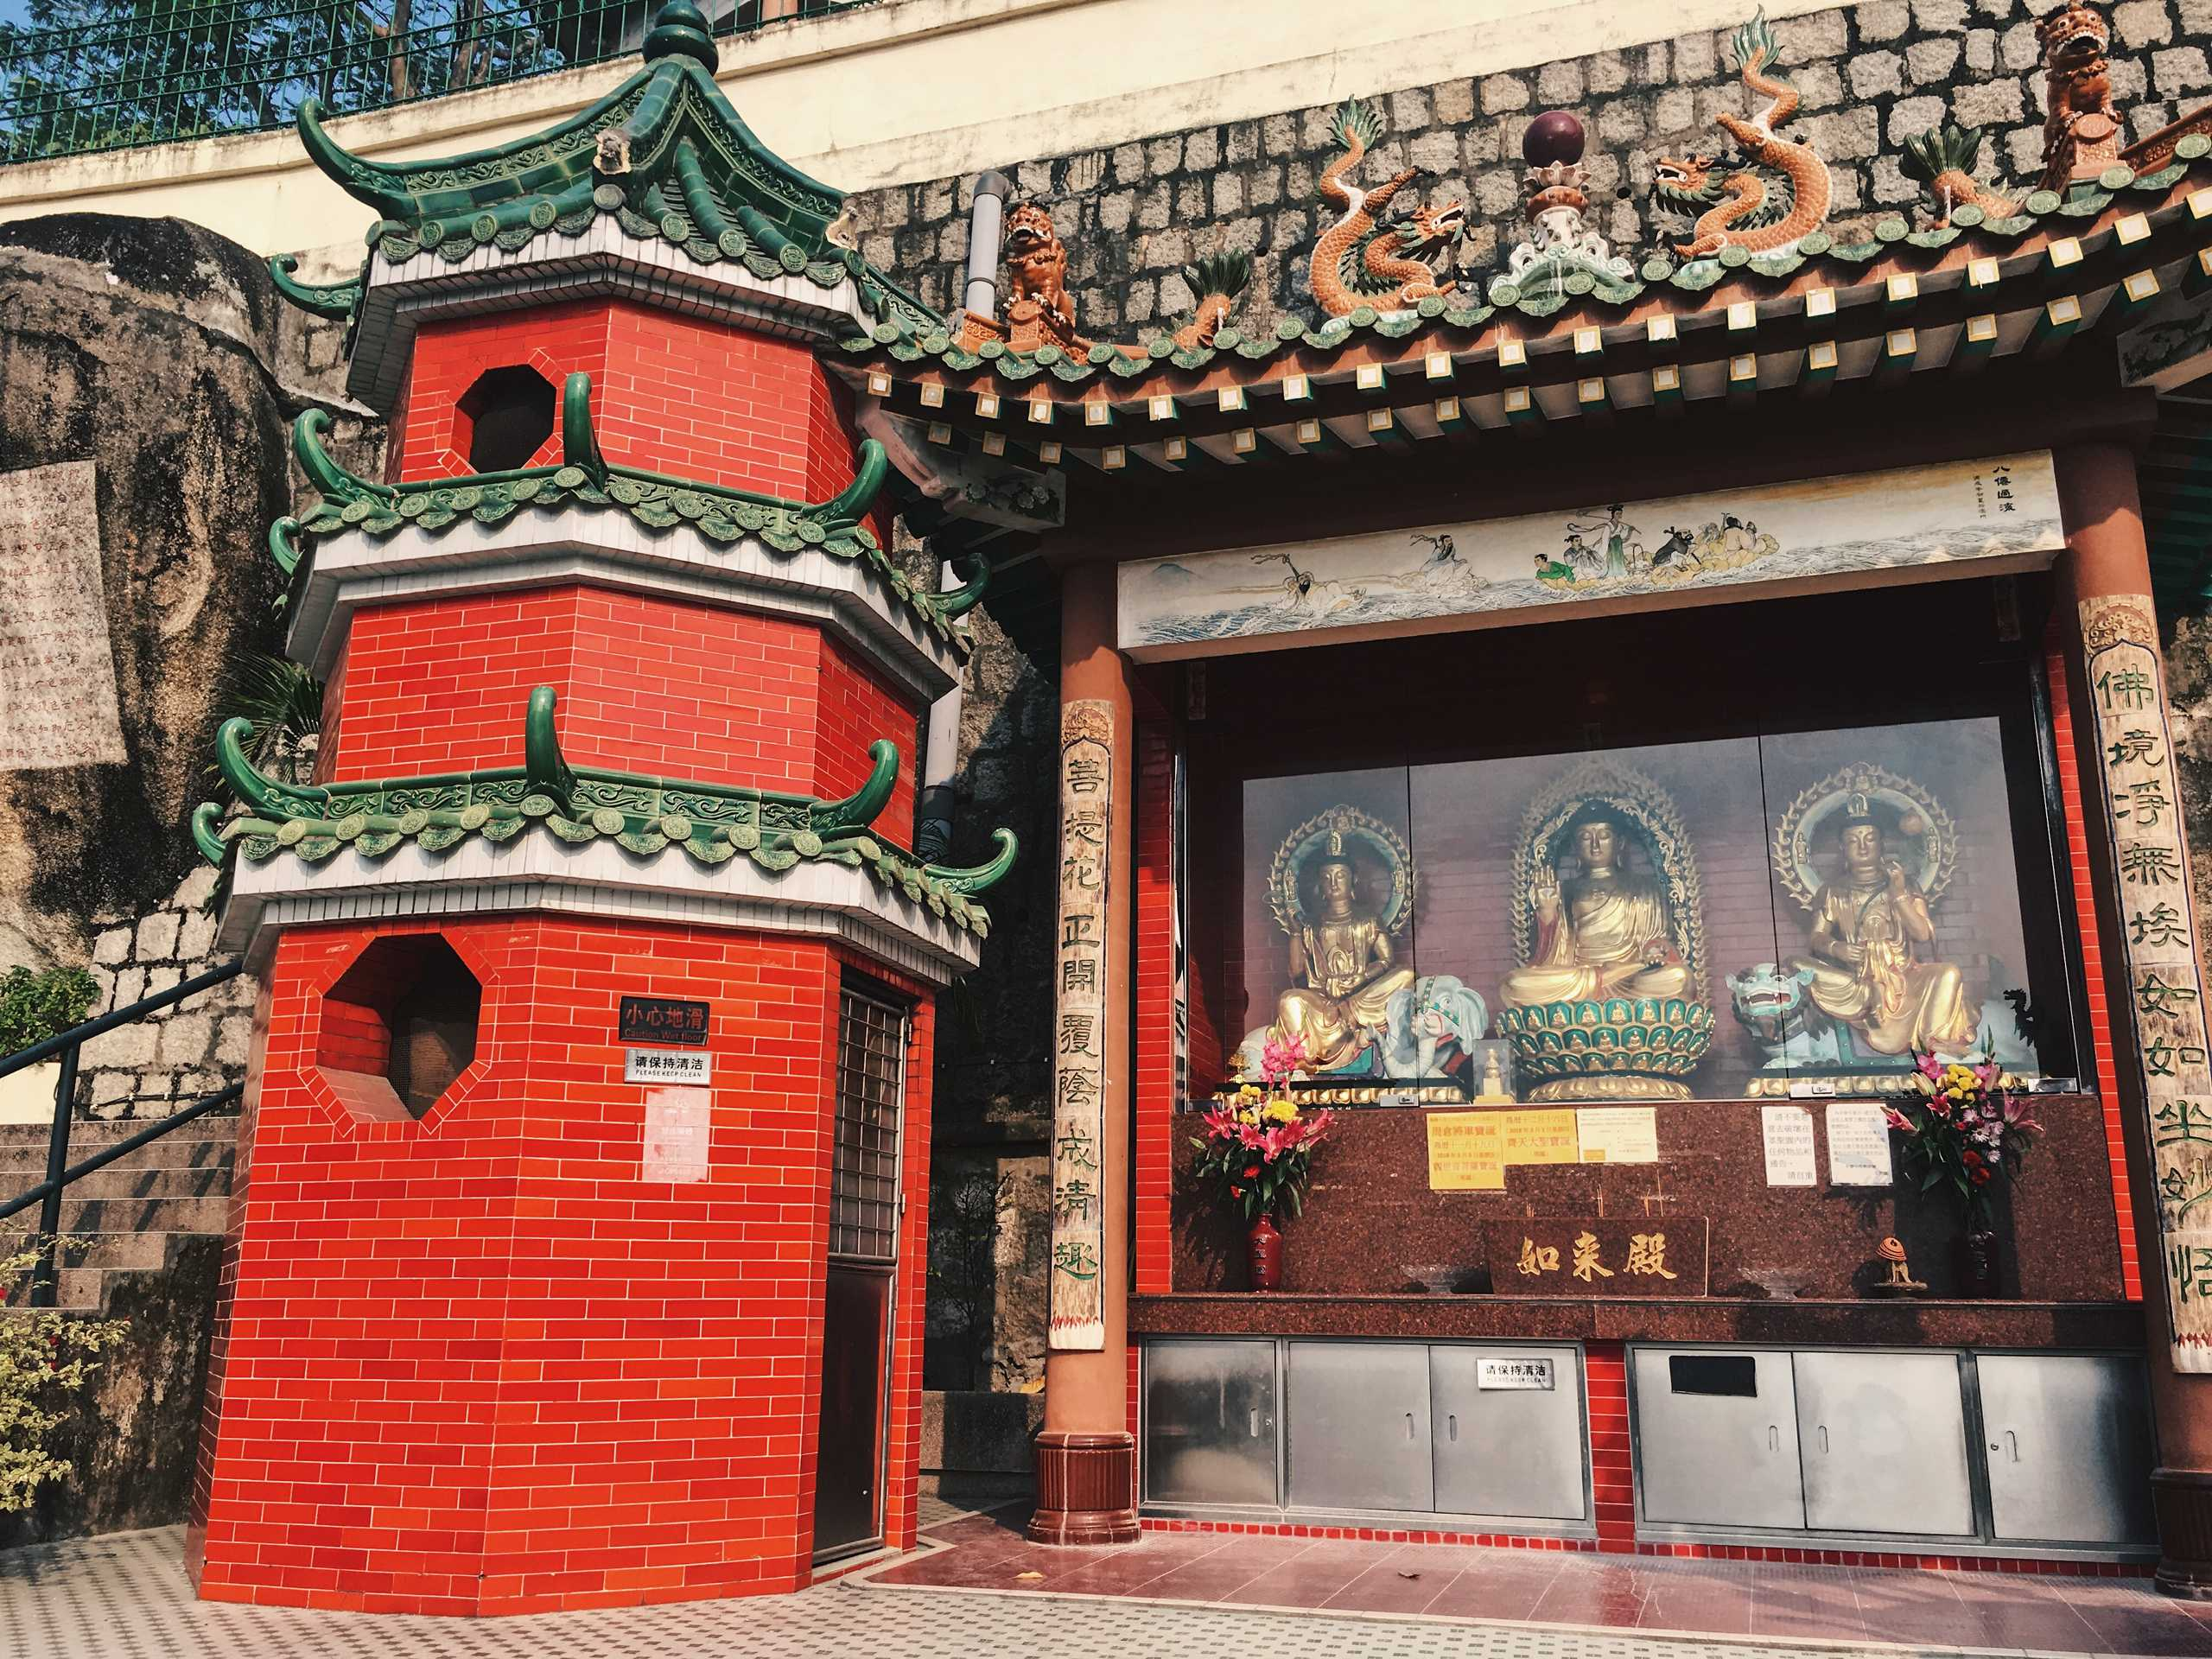 tou tei local god of land temple Your Ultimate Guide to Macau's Most Beautiful Temples Macau Lifestyle